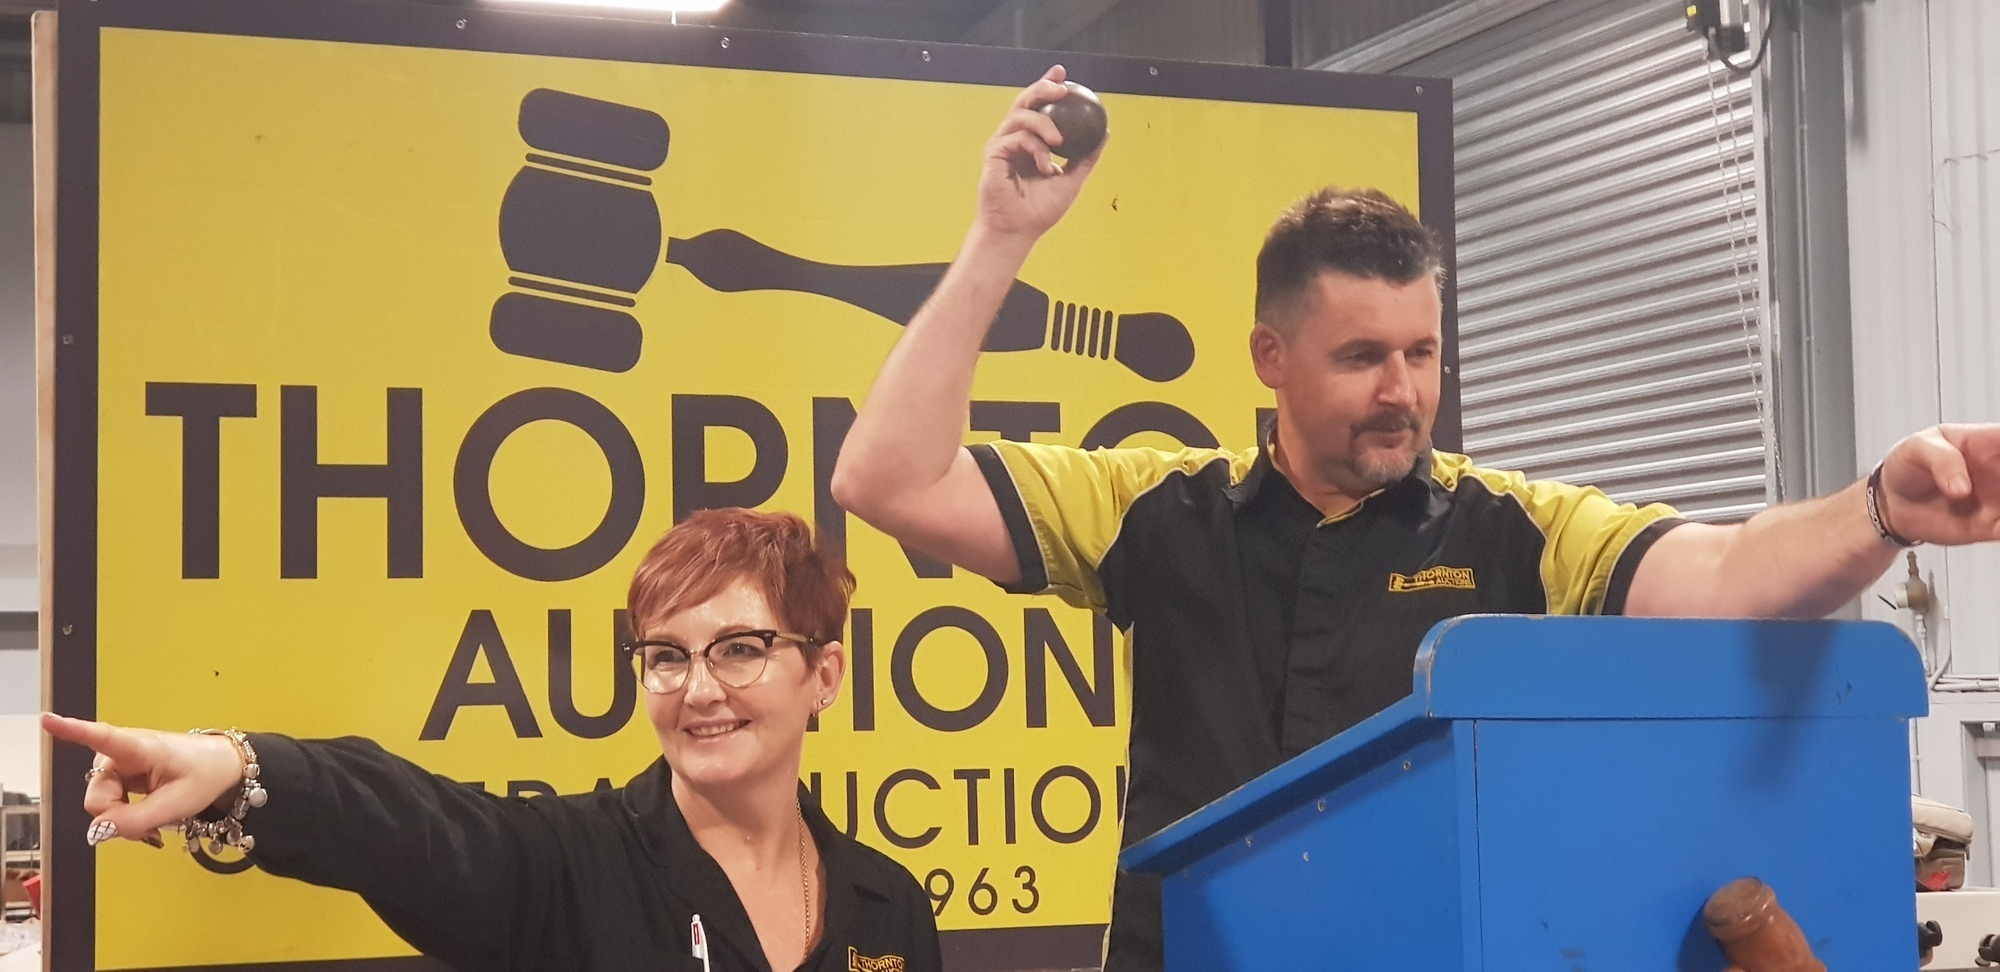 Onsite Auctions